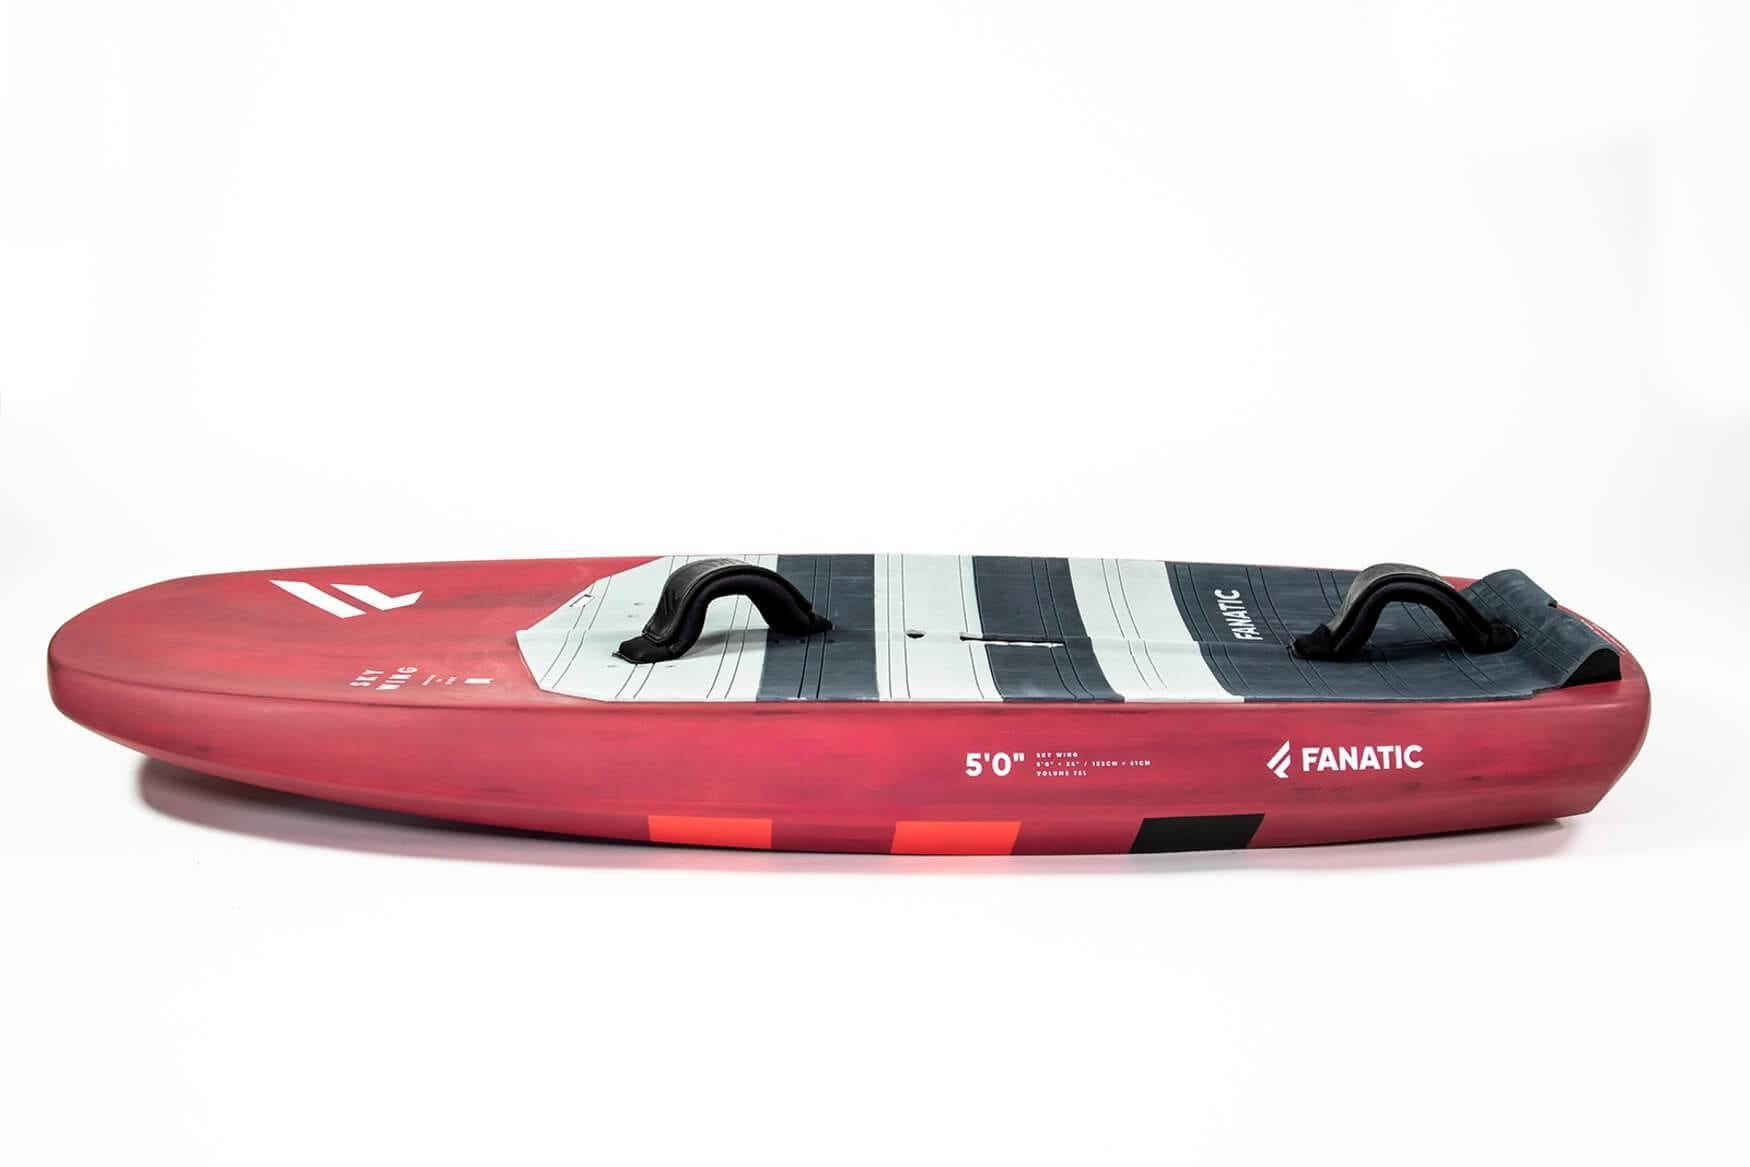 6' Fanatic Sky Wing 2020 - Urban Surf